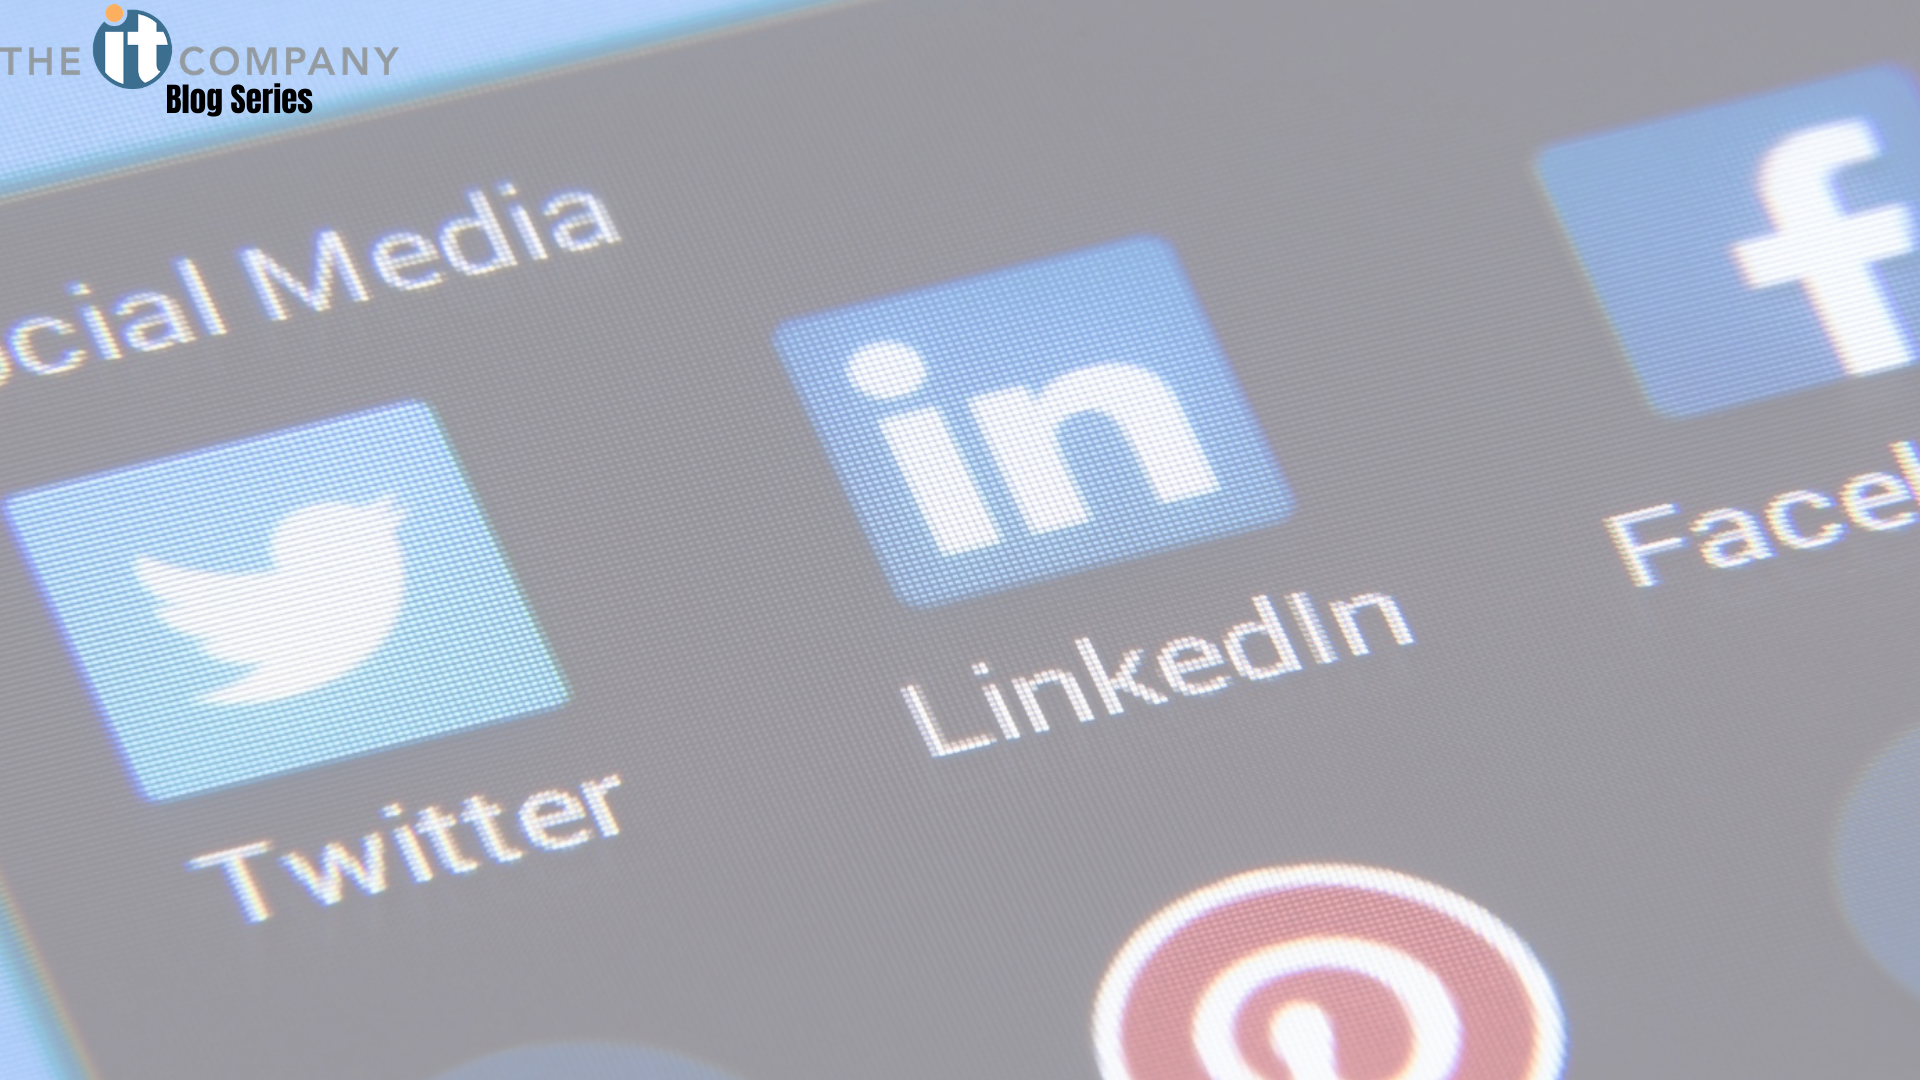 If You Are On LinkedIn... Your Data May Have Been Stolen